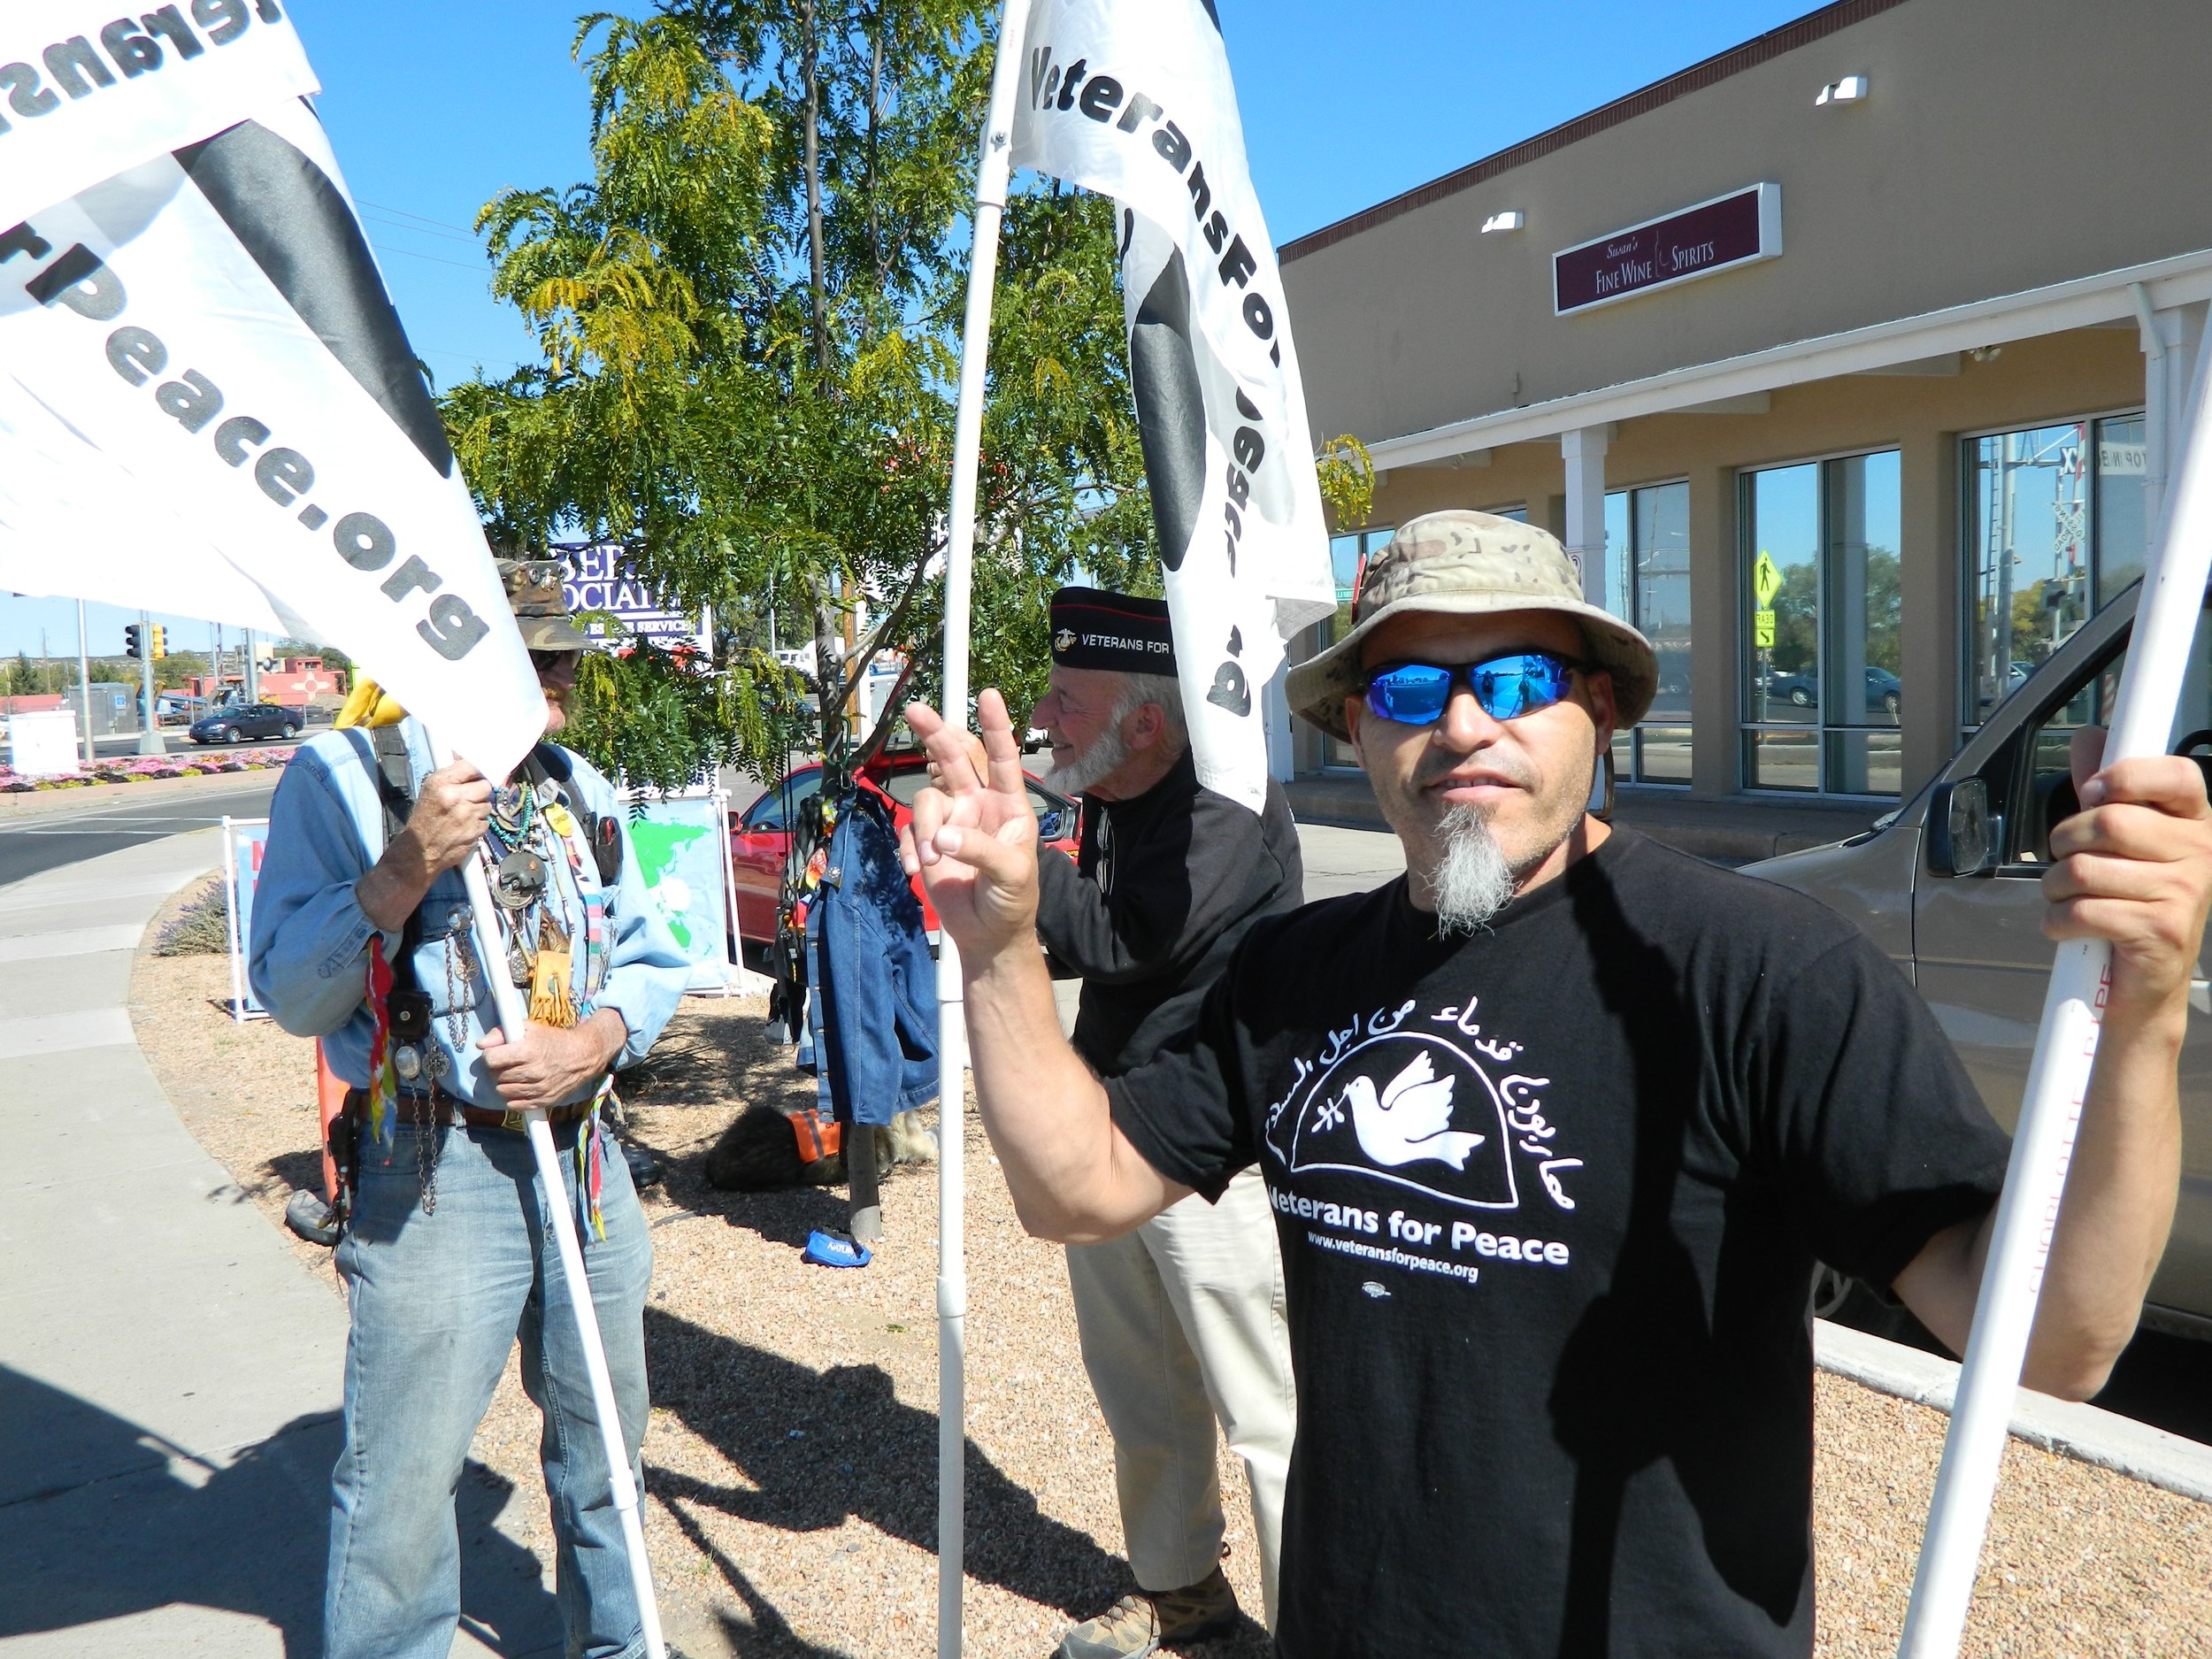 Gulf War vet Daniel Craig with Santa Fe, NM VFP colleagues for their weekly Friday peace vigil.